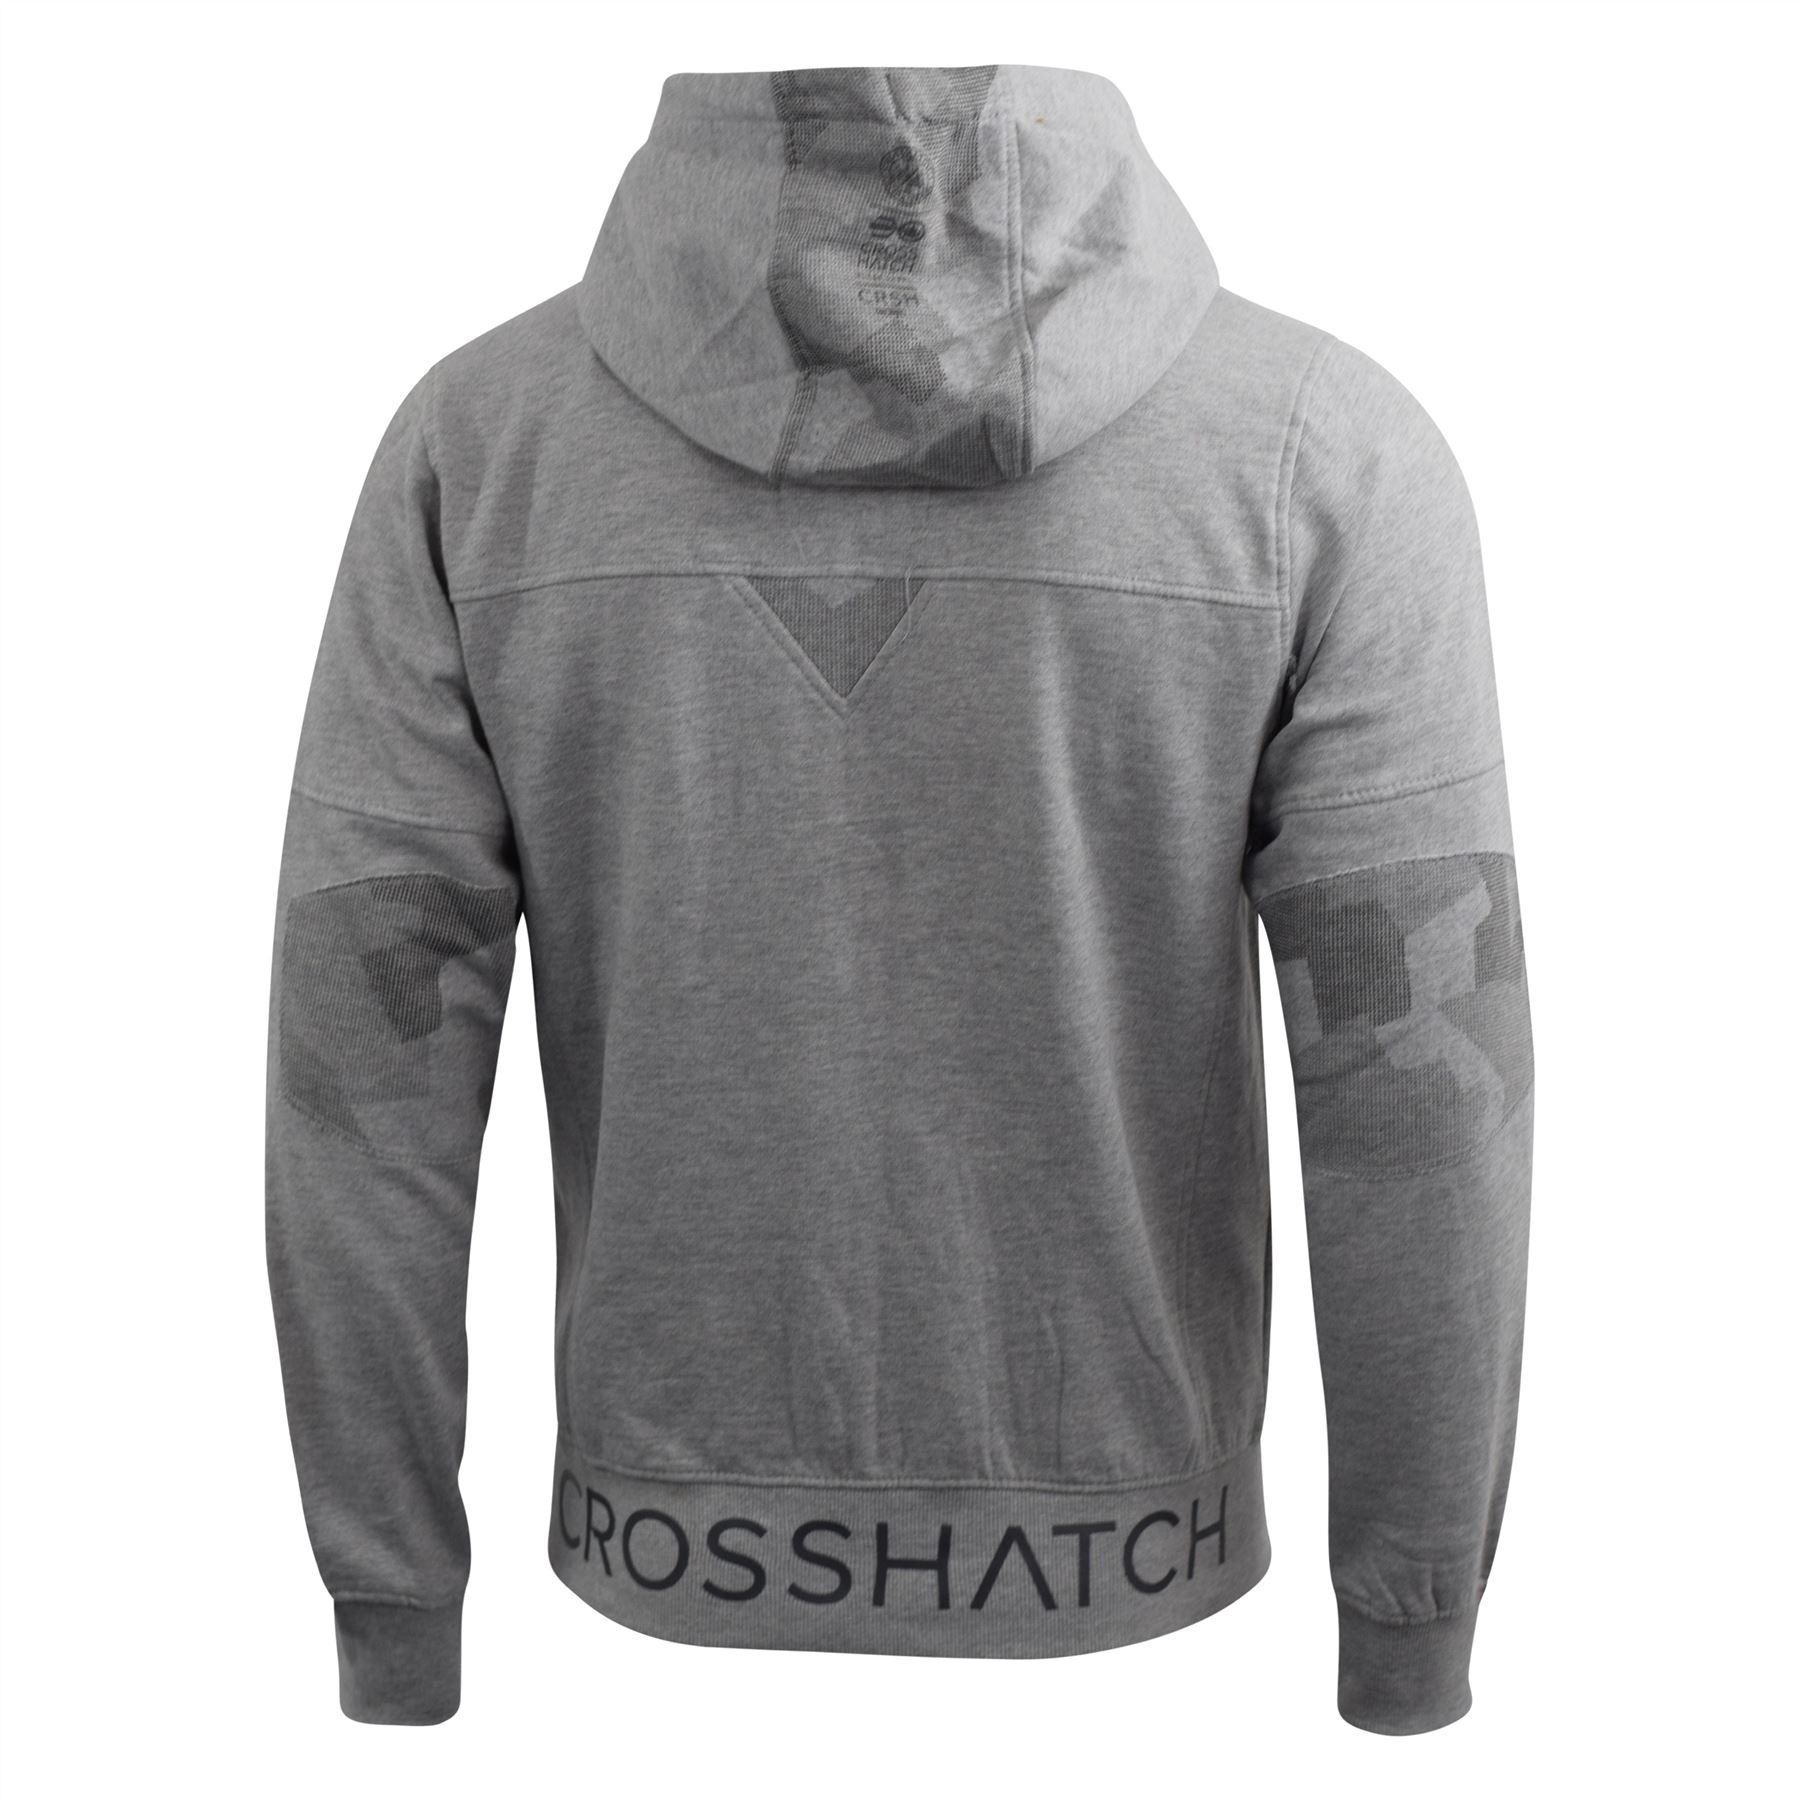 Mens-Hoodie-Crosshatch-Full-Zip-Sweatshirt-Hooded-Jumper-Top-Pullover-Radzim thumbnail 10